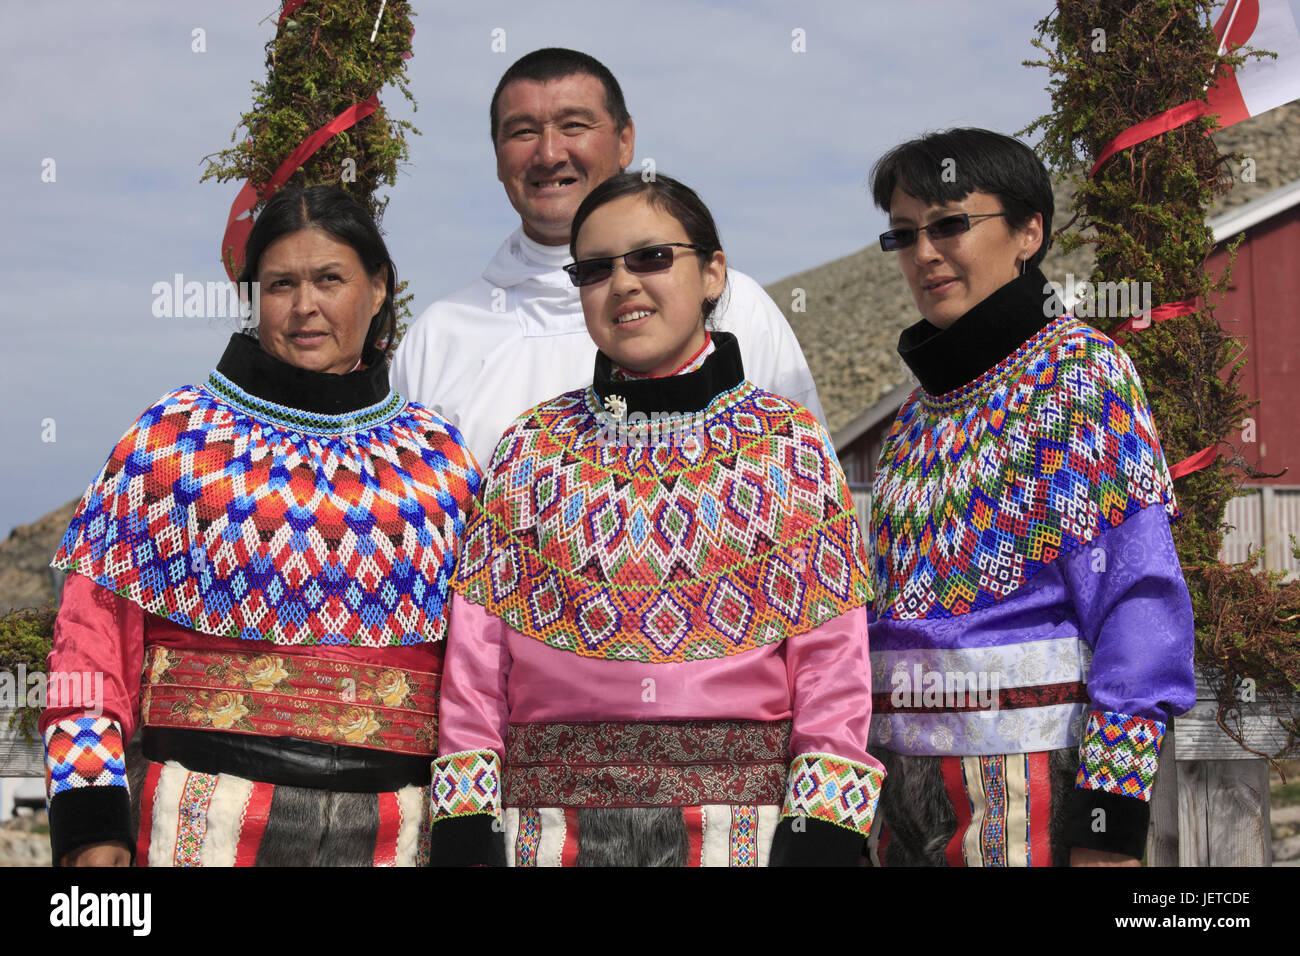 Greenland Upernavik Inuit confirmation family picture no model release North-Western Greenland person native the Arctic national costume faith ...  sc 1 st  Alamy & Greenland Upernavik Inuit confirmation family picture no model ...